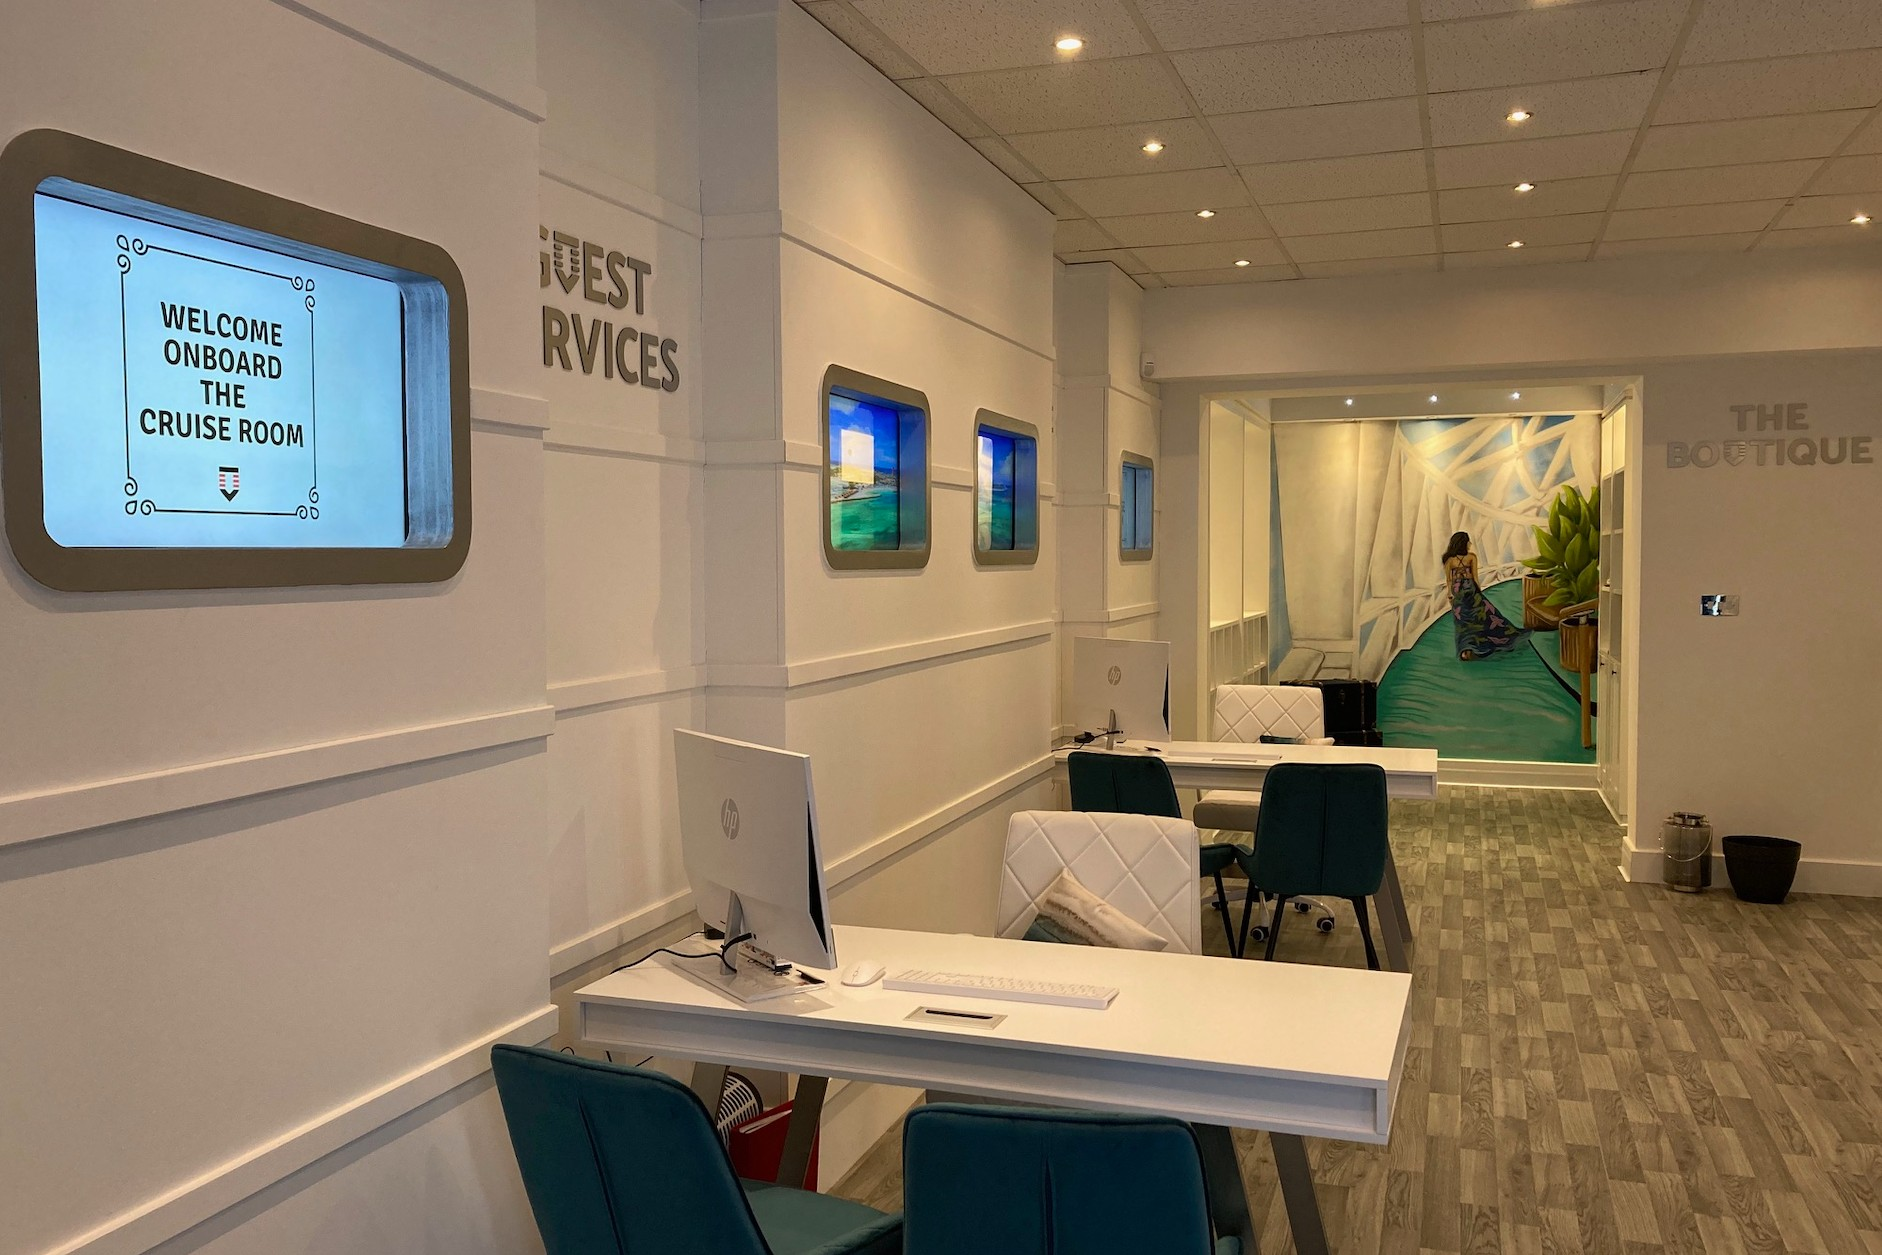 """The Cruise Room has been designed as a """"ship in shop"""" concept to give customers the feeling of being onboard."""